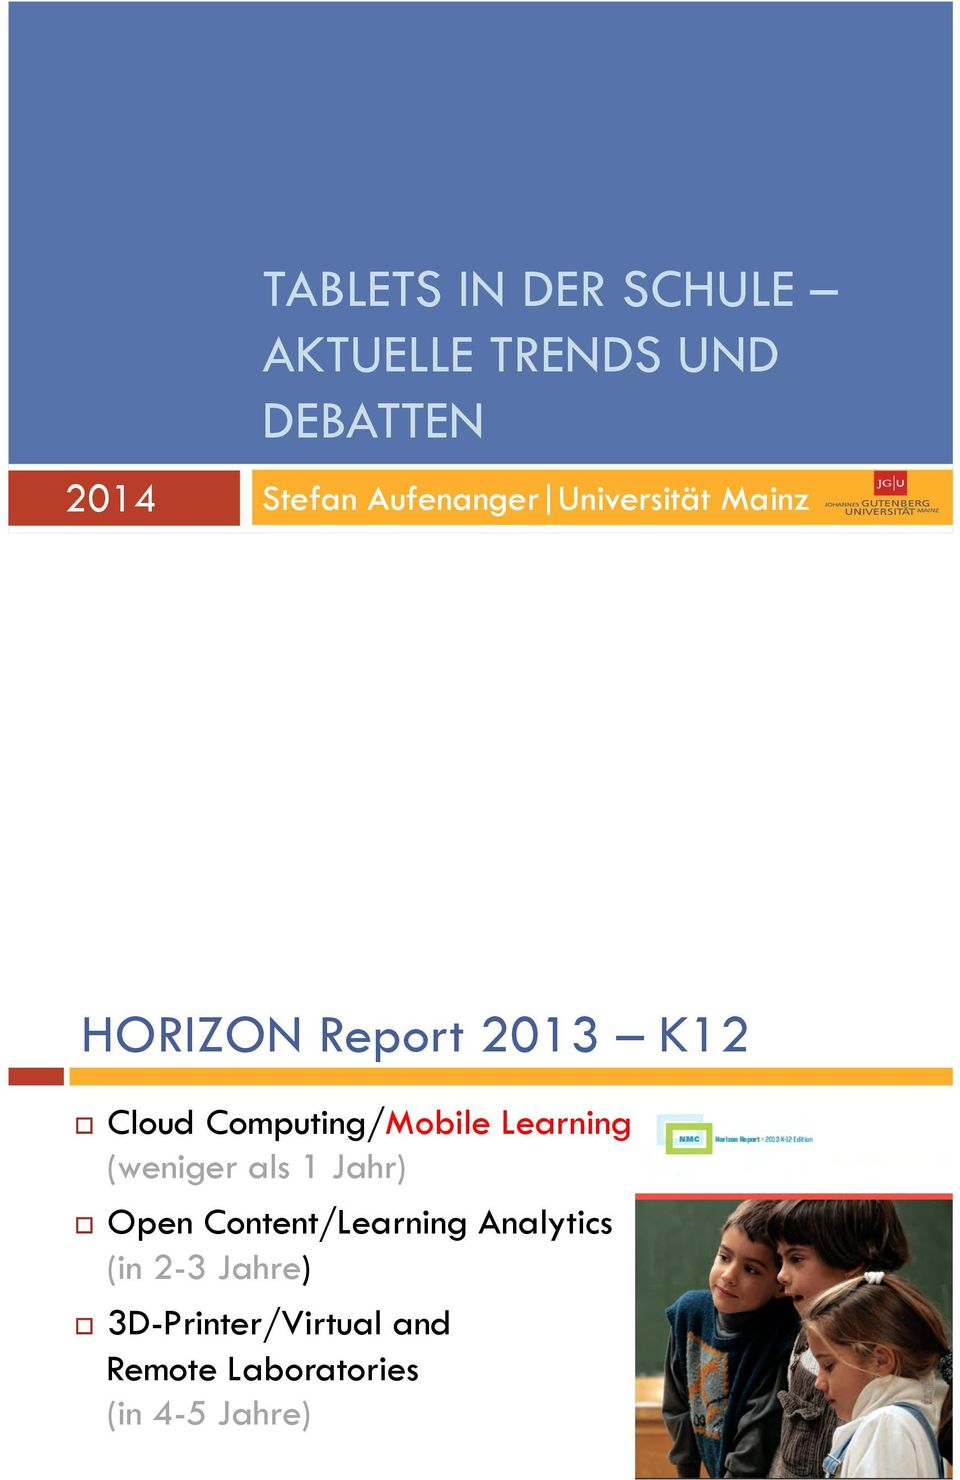 Cloud Computing/Mobile Learning (weniger als 1 Jahr)!